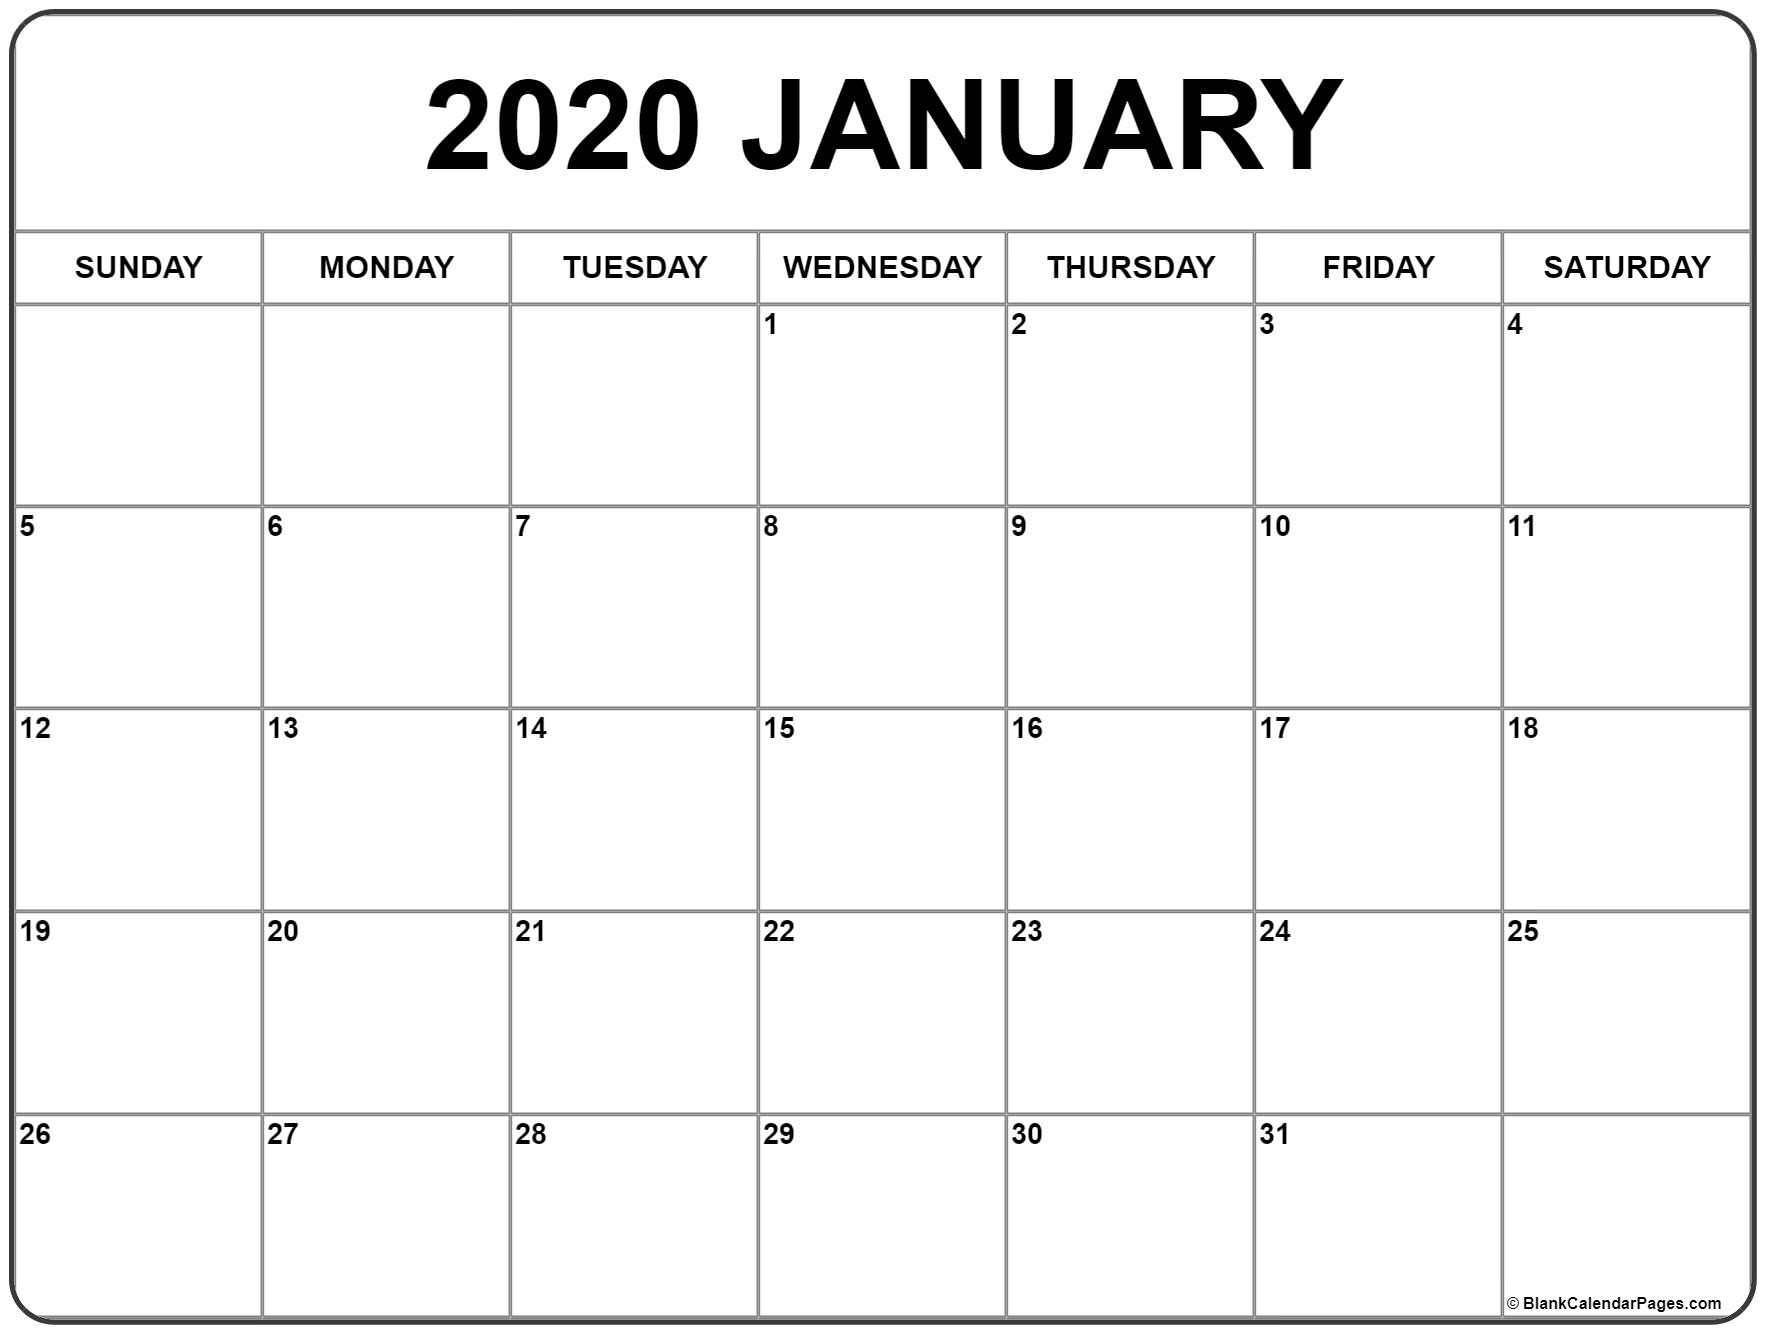 January 2020 Calendar | Free Printable Monthly Calendars-5 Day Calander Template July 2020